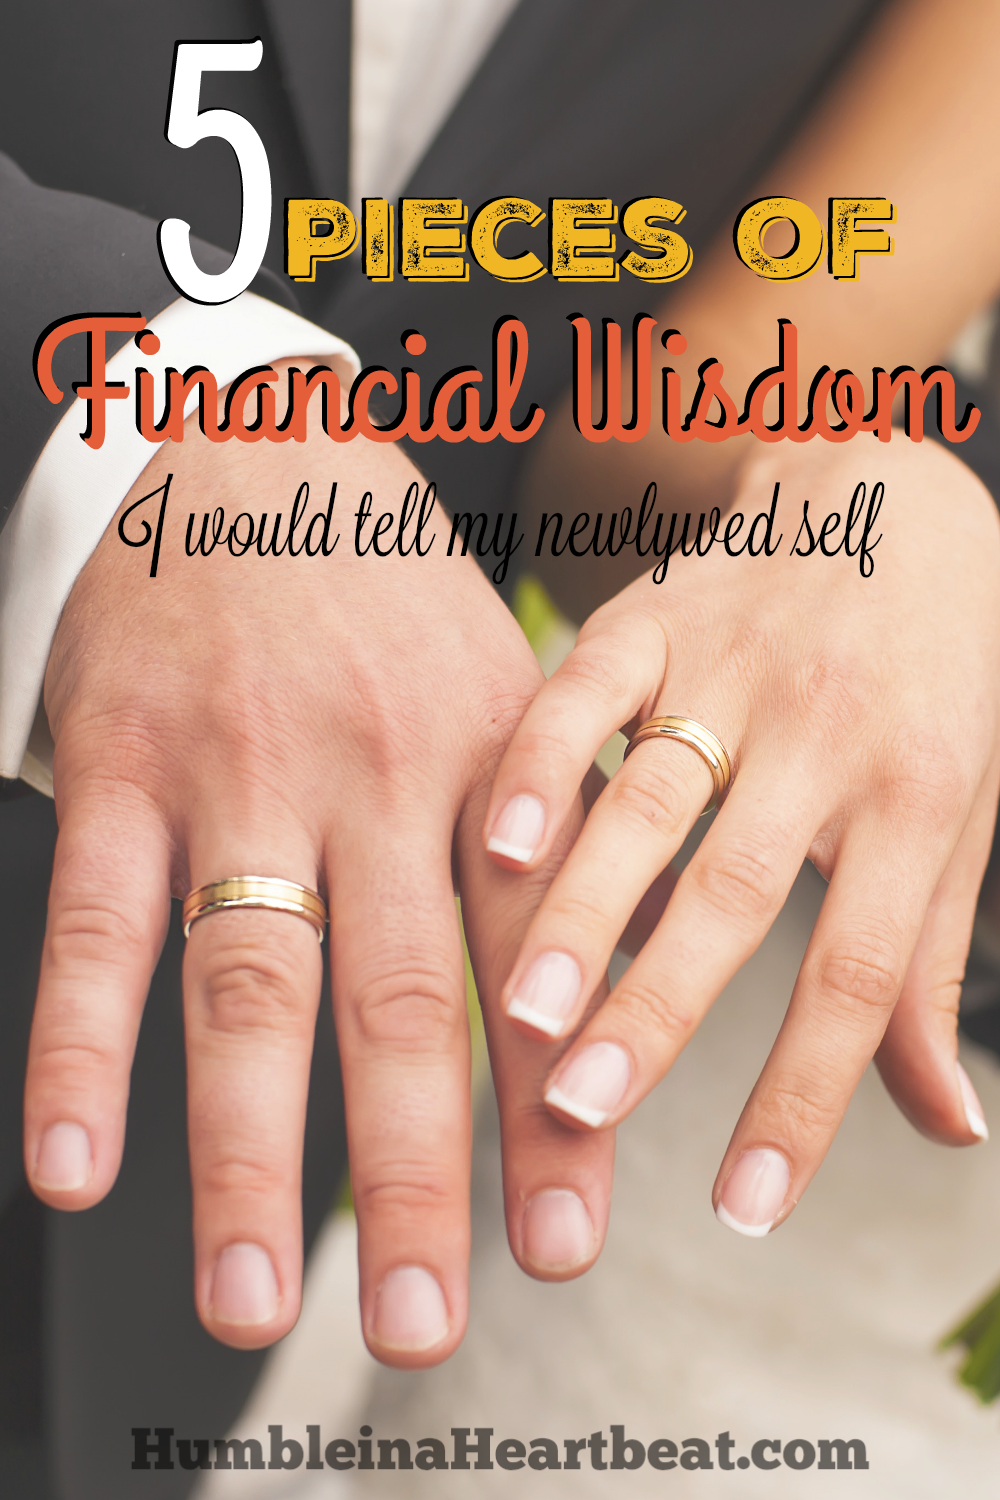 Most couples make at least a few financial mistakes throughout their marriage. If I could write a letter to myself as a newlywed, these are the 5 pieces of financial wisdom I would share to avoid big mistakes.